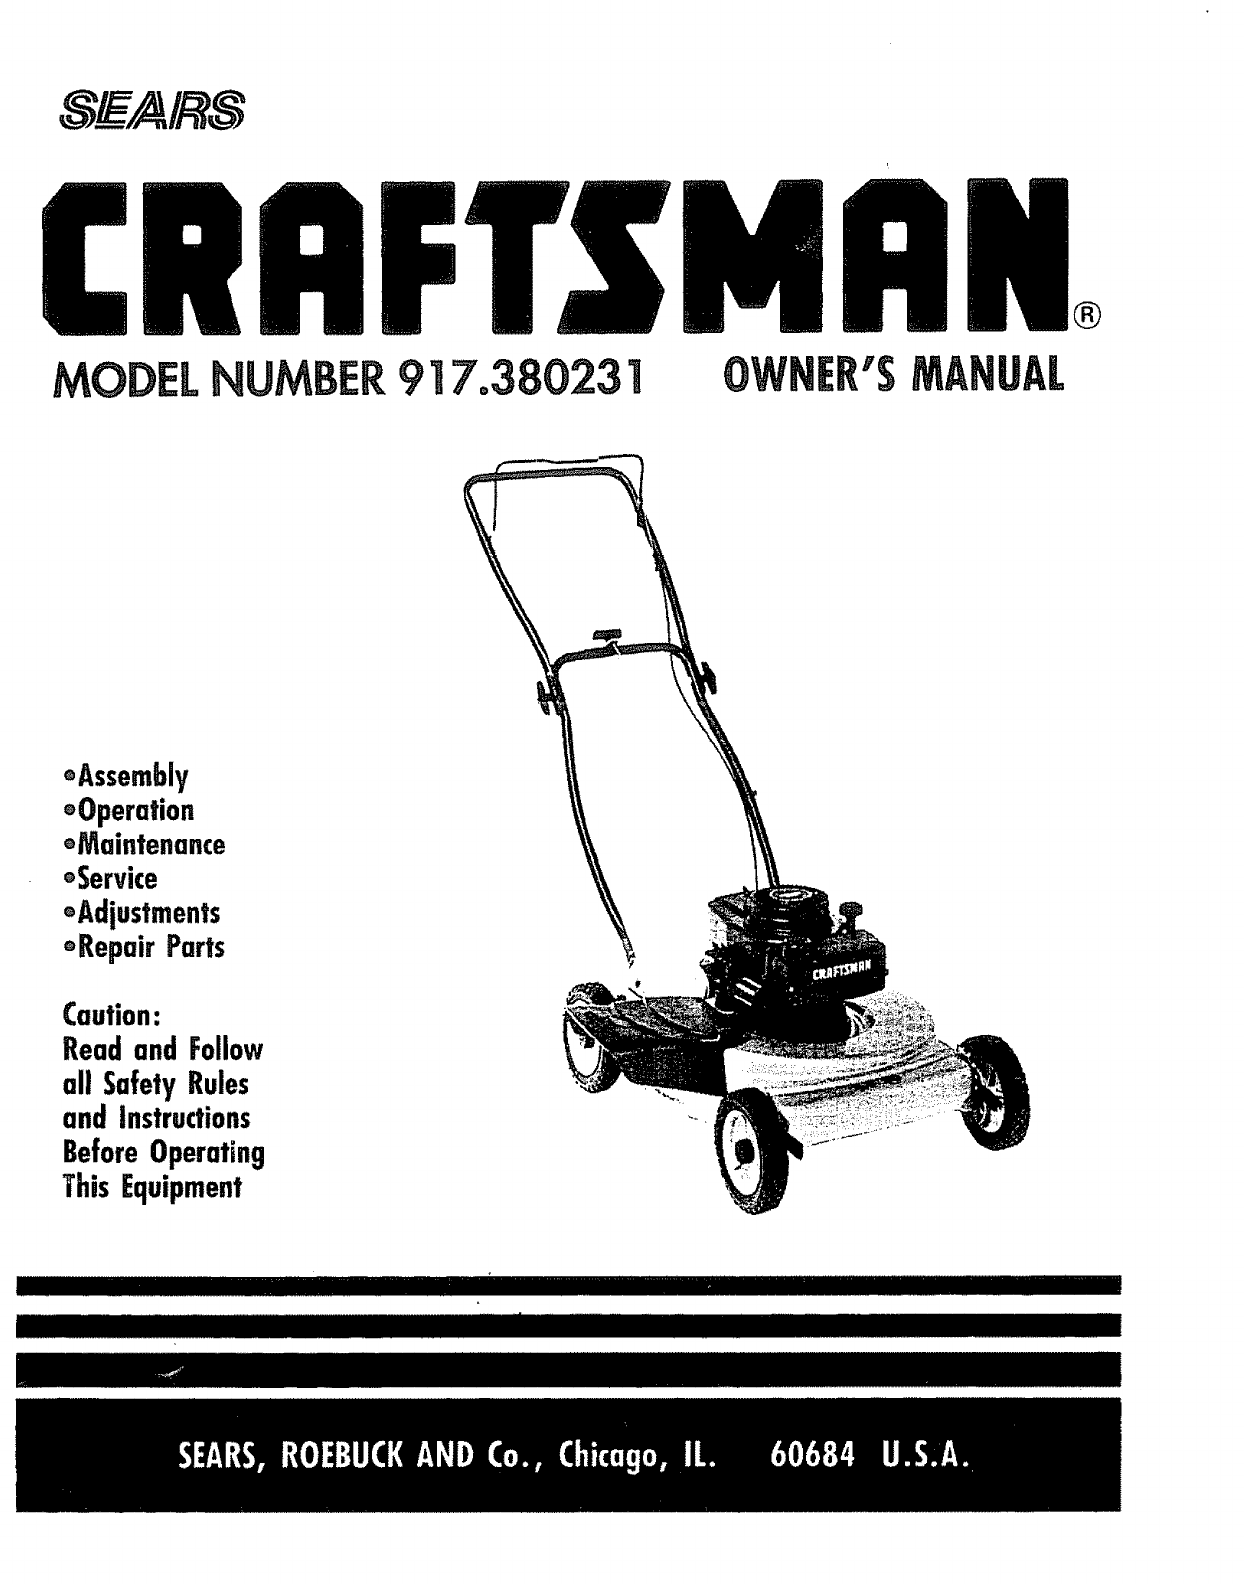 Craftsman 917380231 User Manual Lawn Mower Manuals And Guides 1006755l